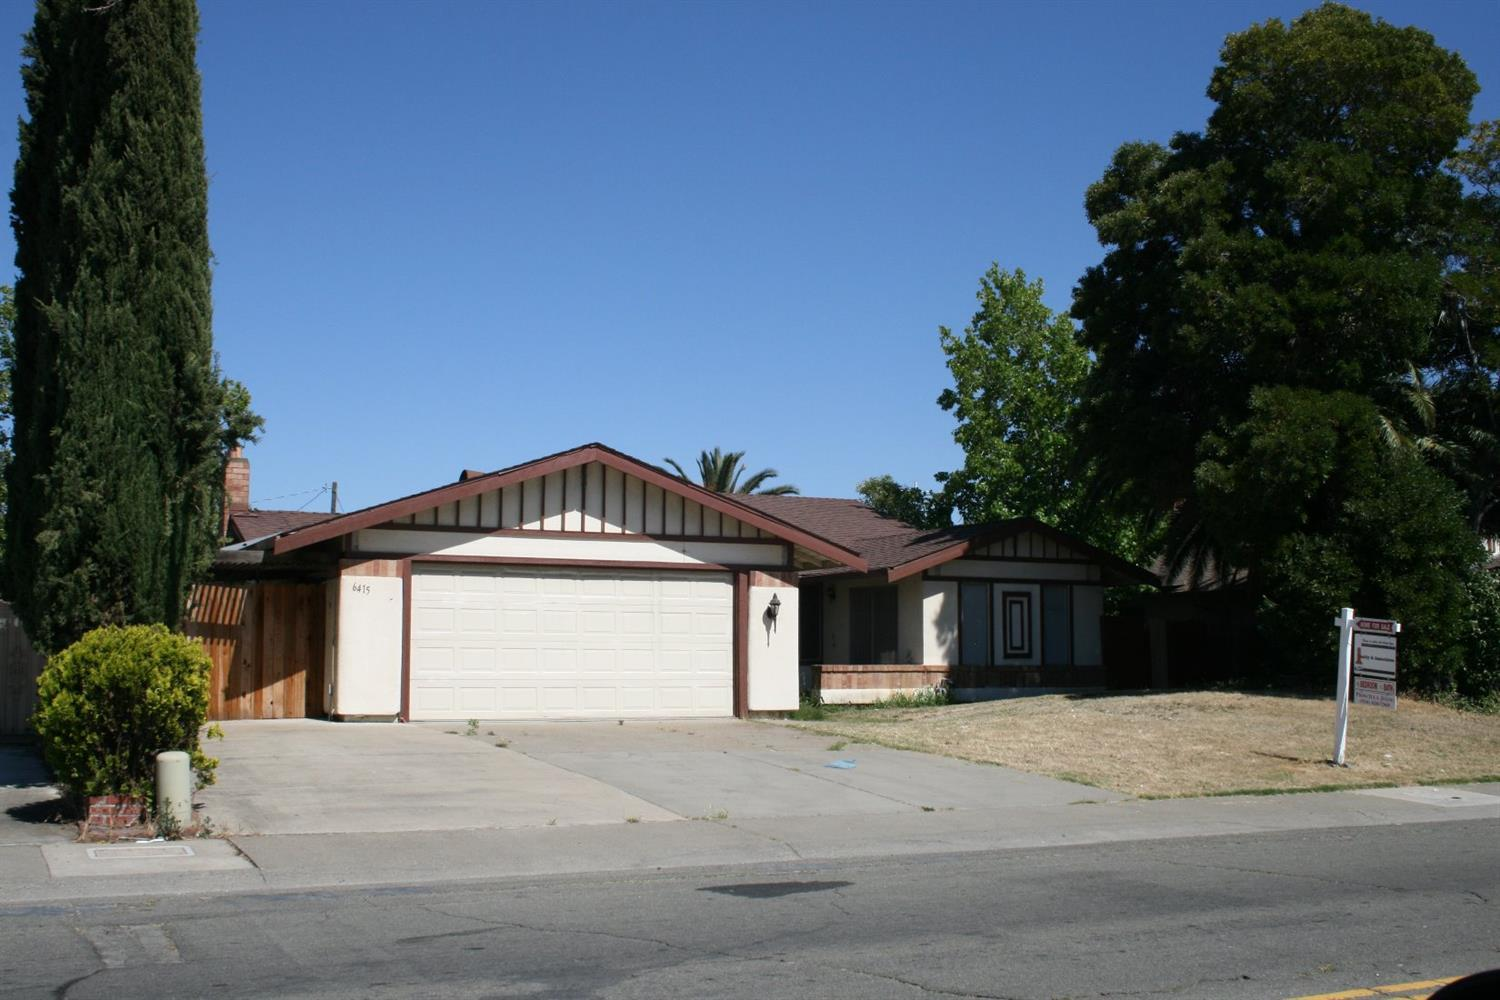 6415 rancho adobe dr sacramento ca mls 17063536 for Adobe home builders california